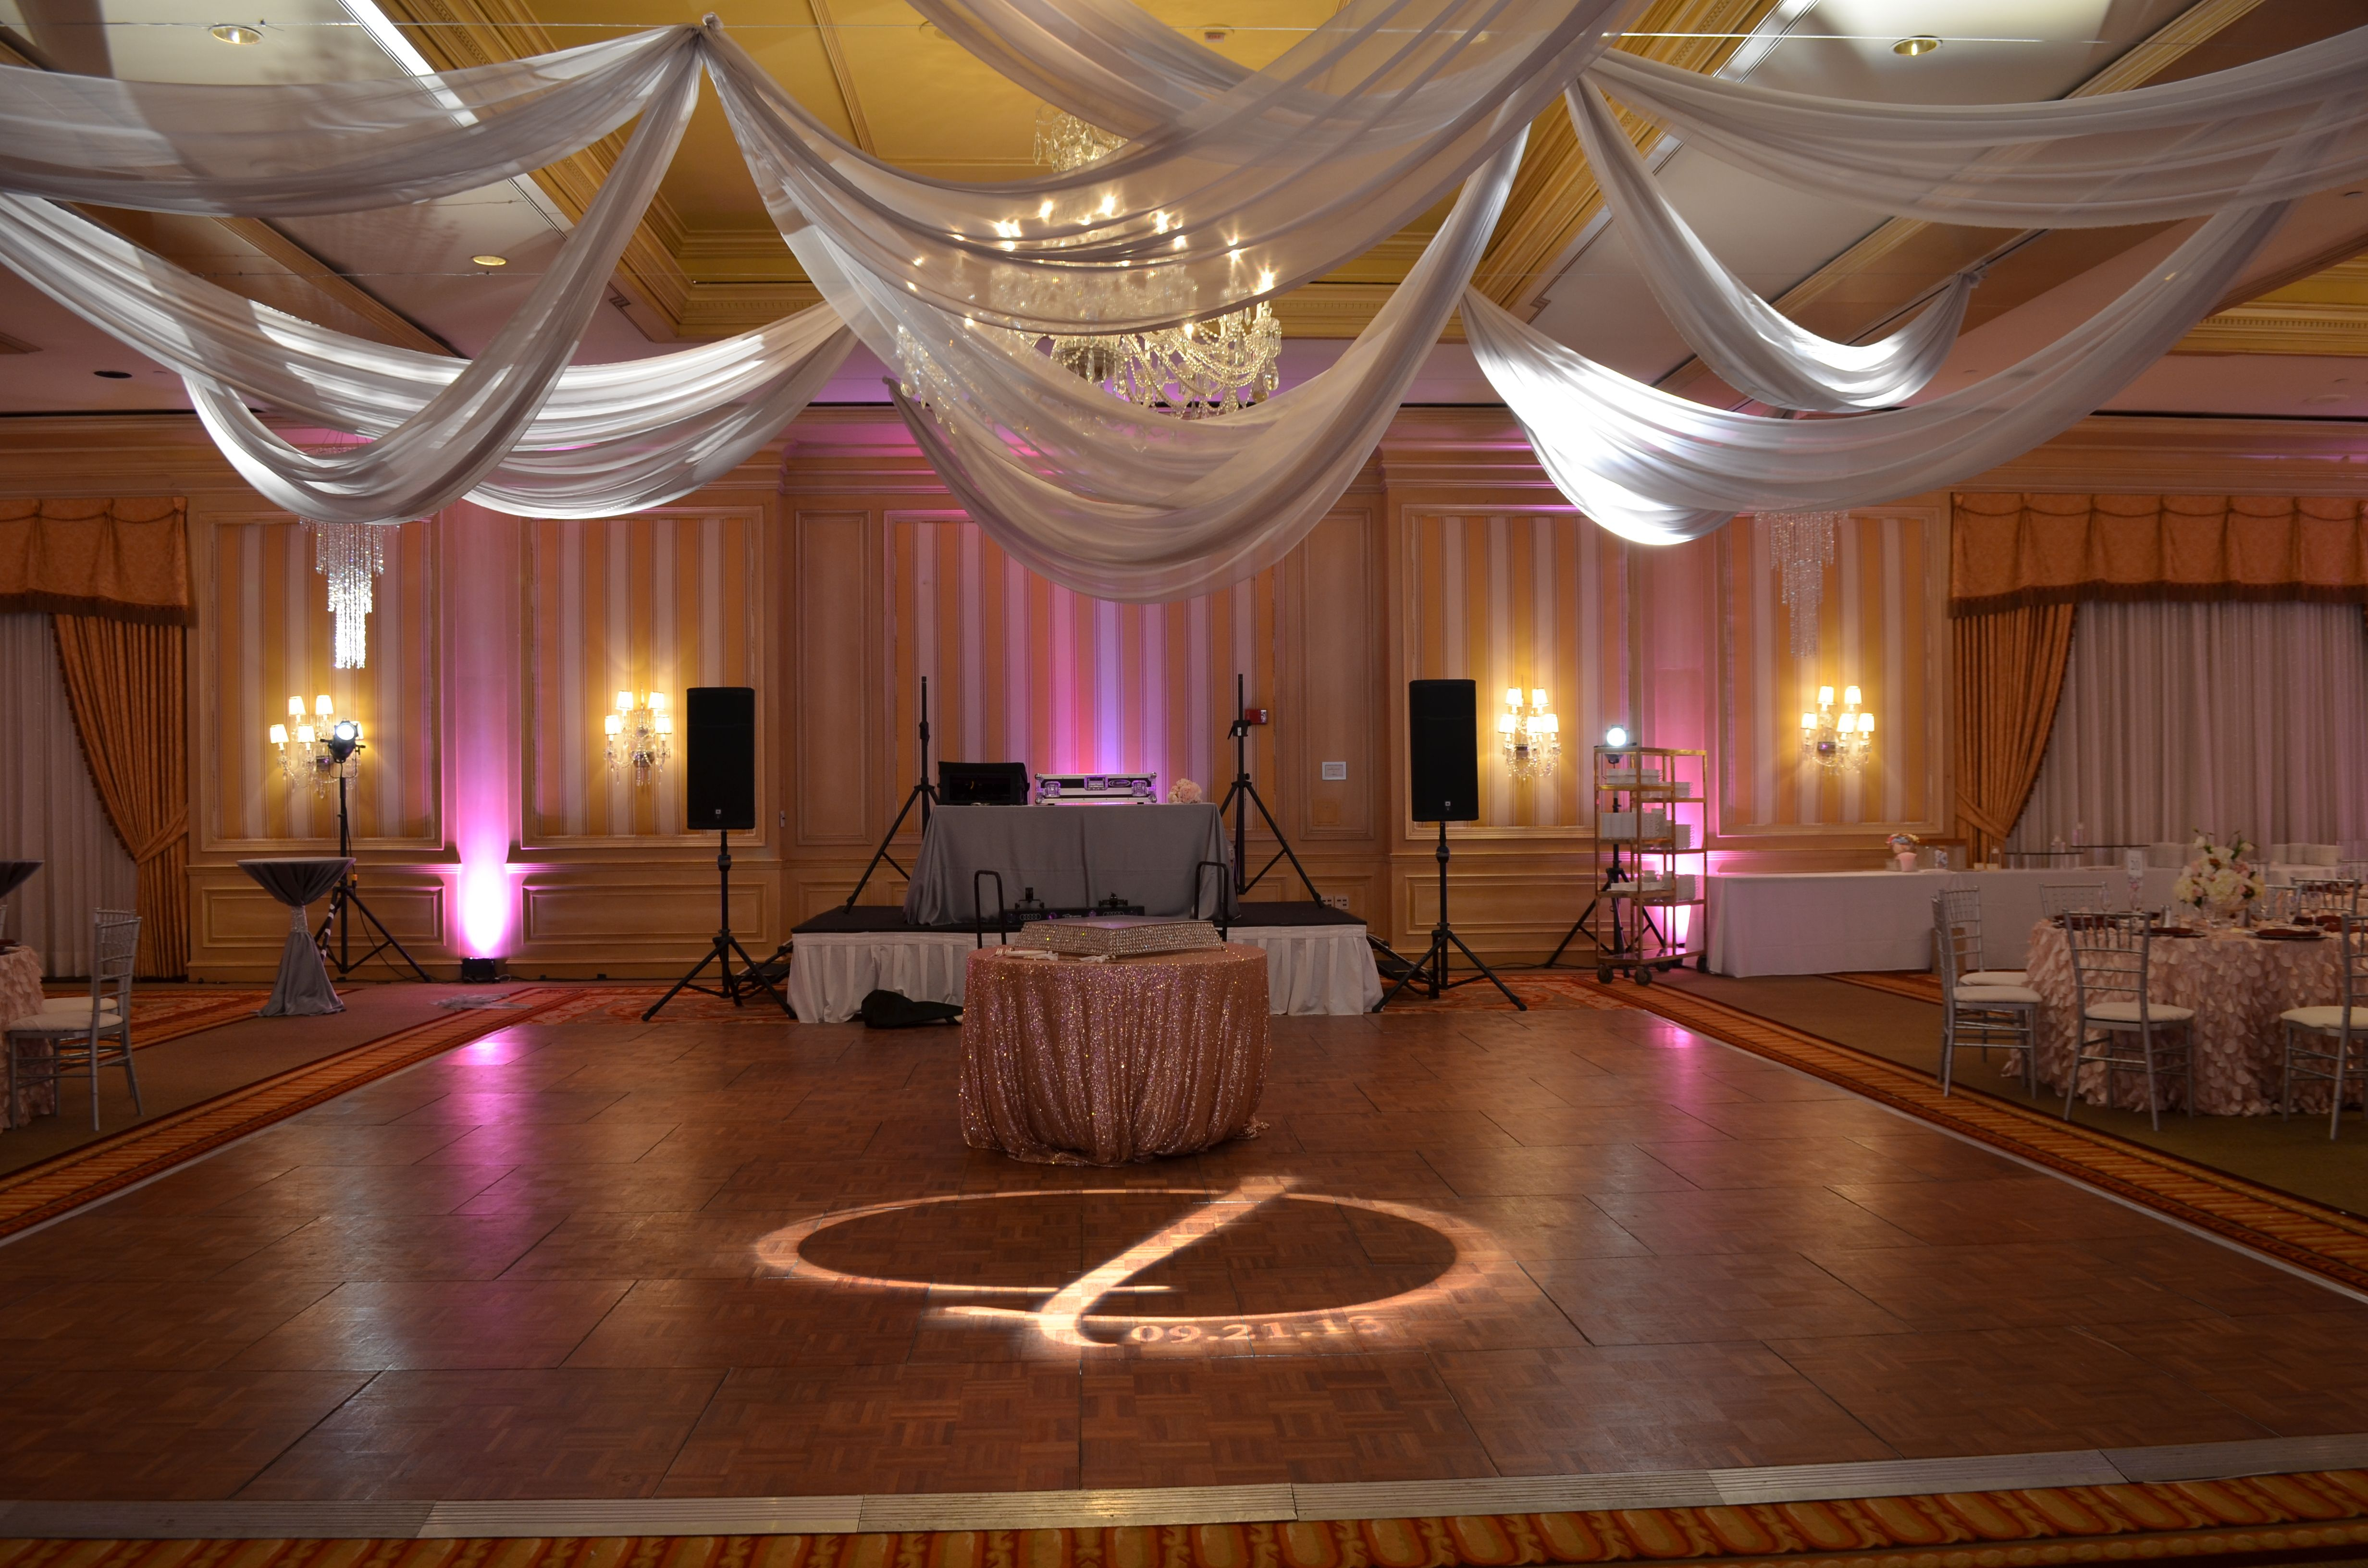 Wedding event background  Custom Gobo Ceiling Swags and LED uplighting at The Henry  Event